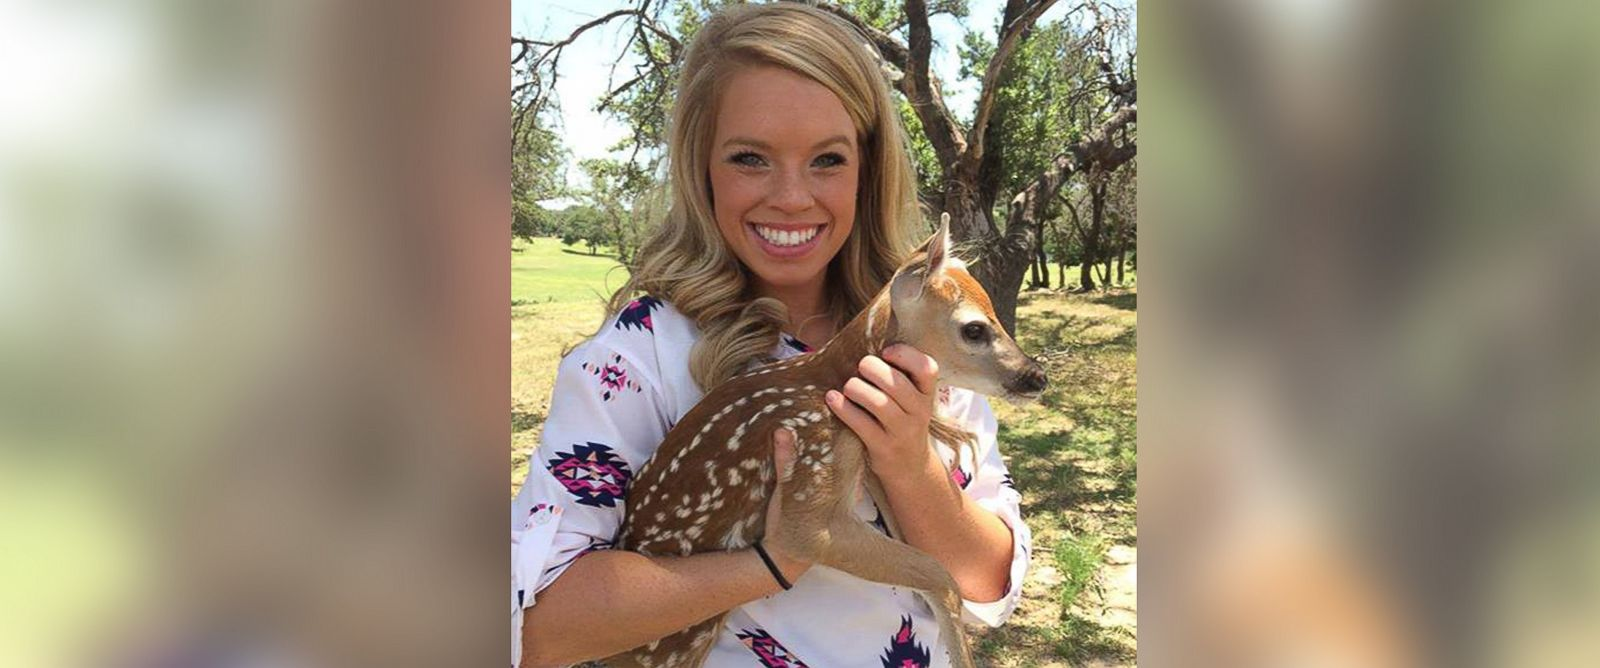 PHOTO: Kendall Jones poses with a photo of a dear on her ranch.